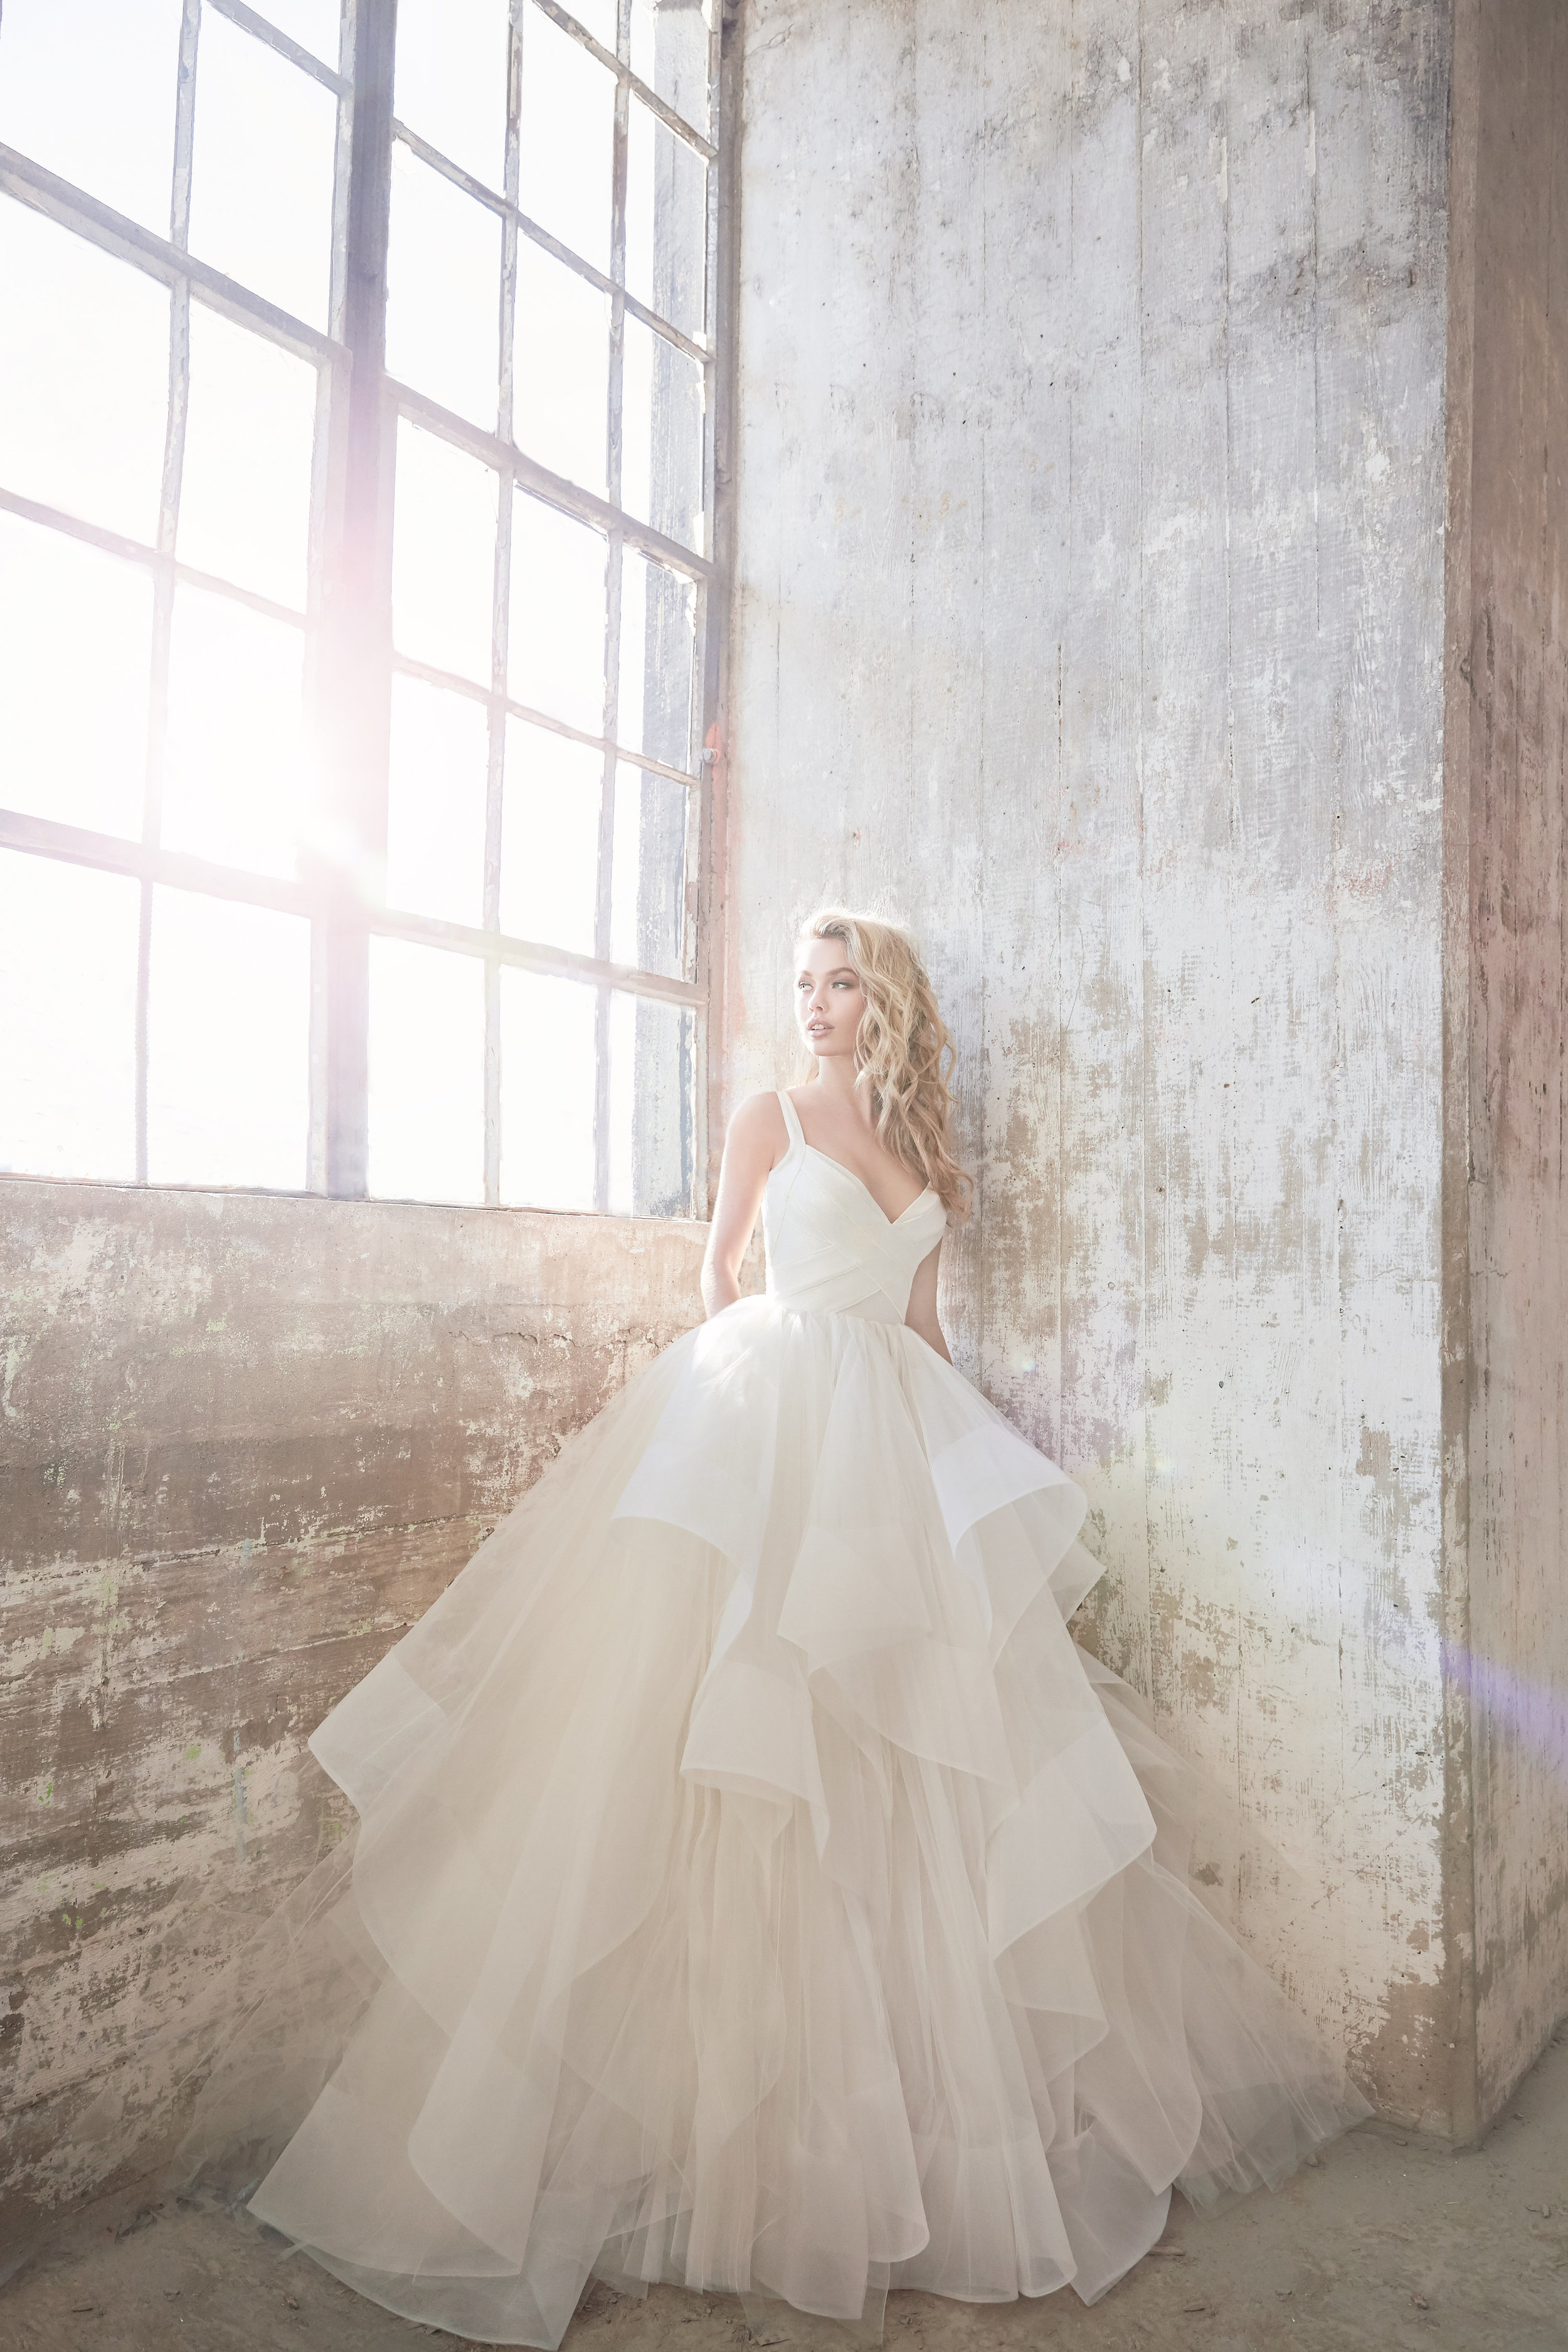 hayley-paige-bridal-spring-2018-style-6803-bowie_4.jpg